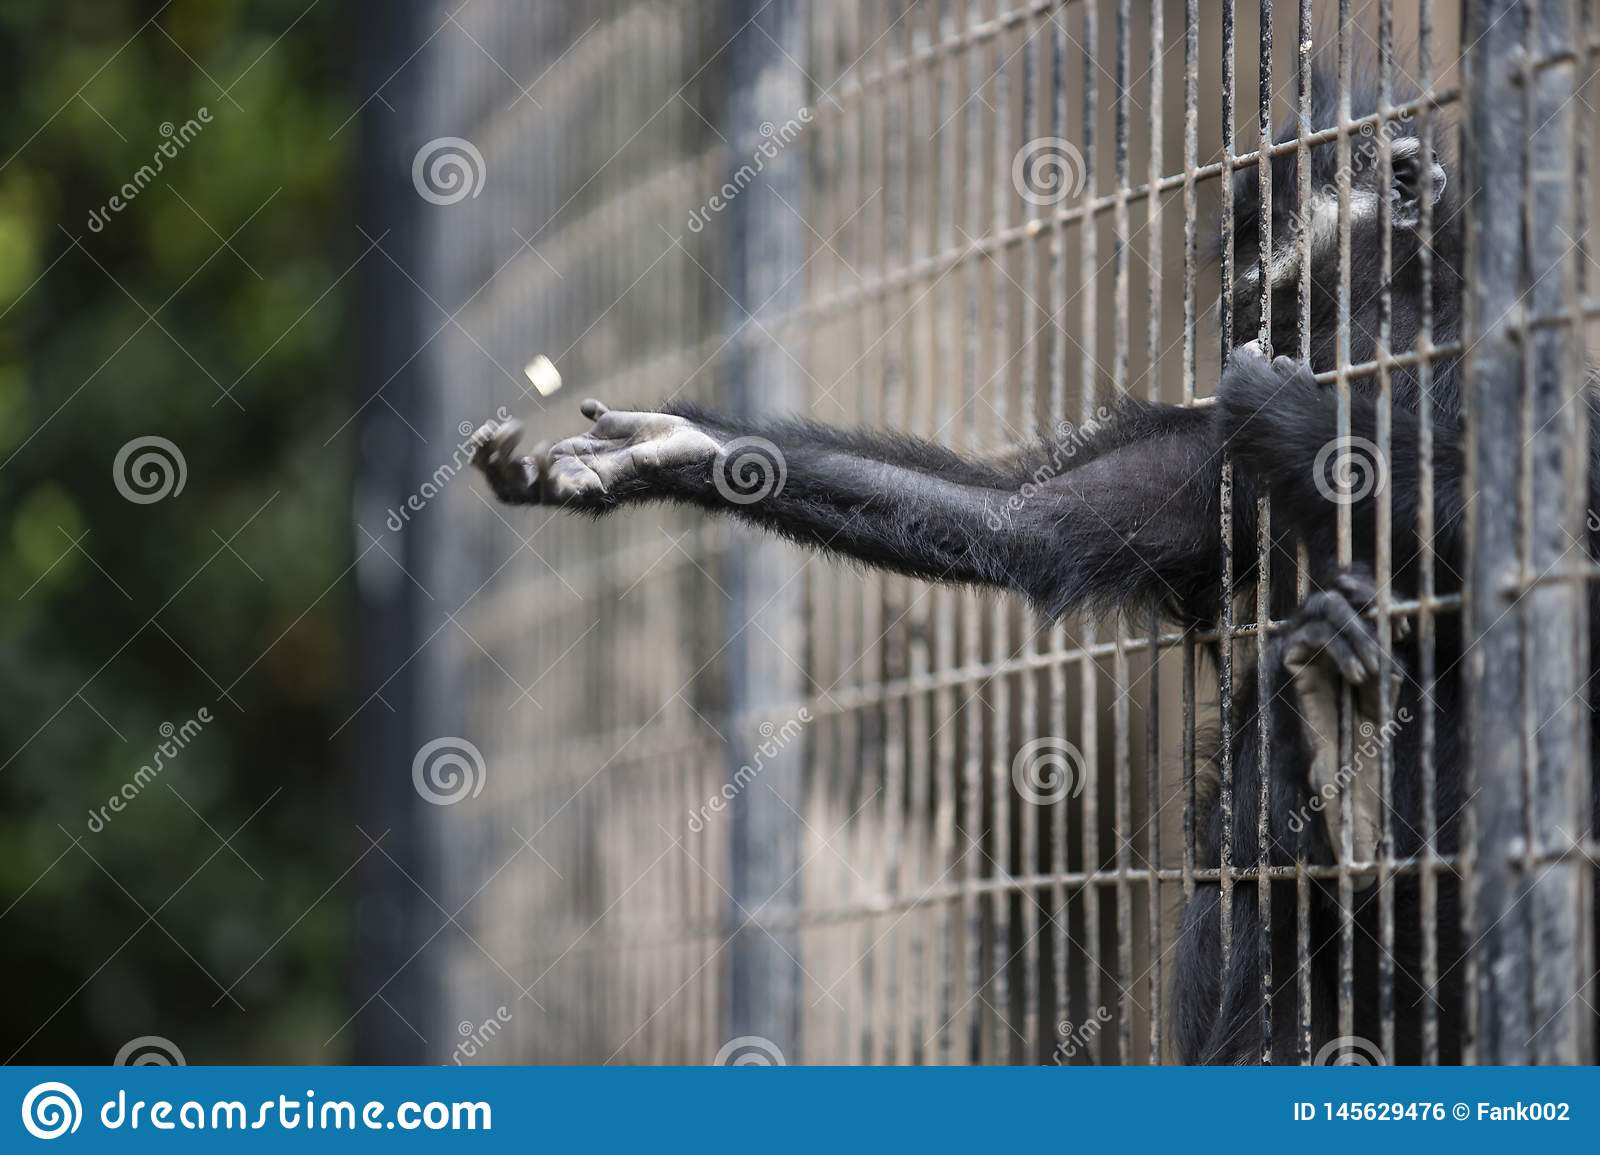 A MONKEY INSIDE GRILLE IN A ZOO